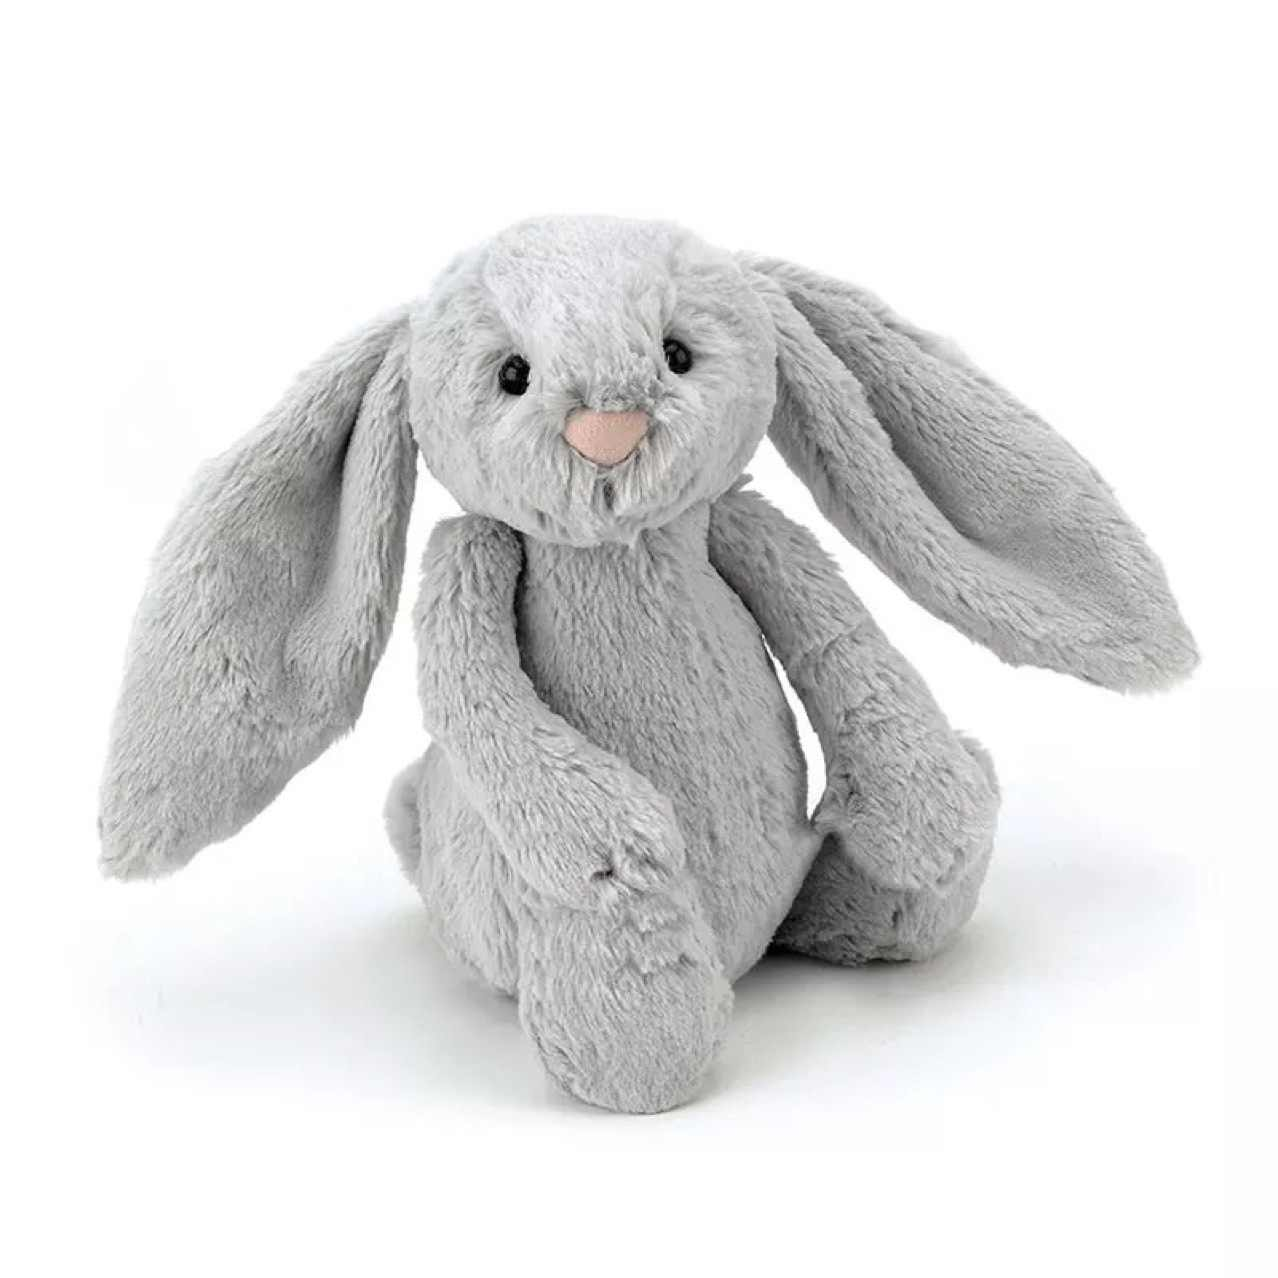 40-55cm Big Ears Bonnie rabbit Plush Toys Stuffed Rabbit Soft Toys Baby Kids Sleep Toys Gifts For girl.